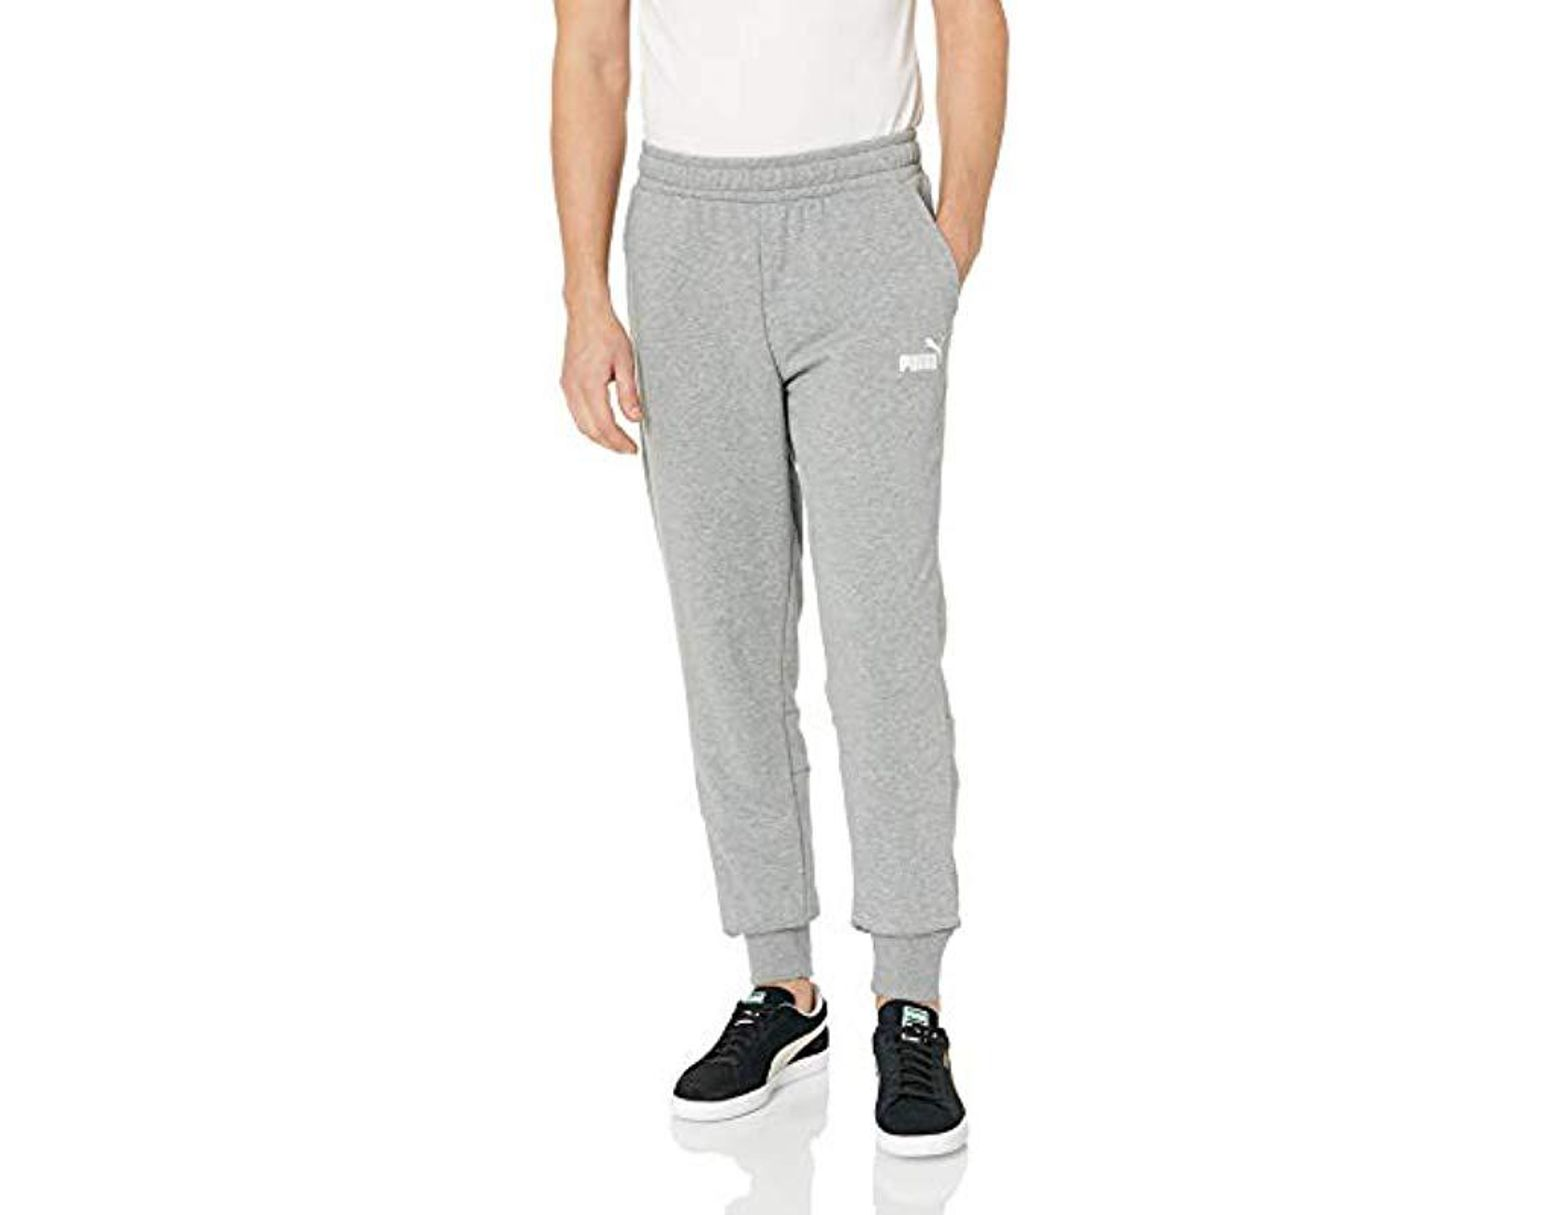 0c6cfa13bff22 Men's Gray Amplified Sweat Pants